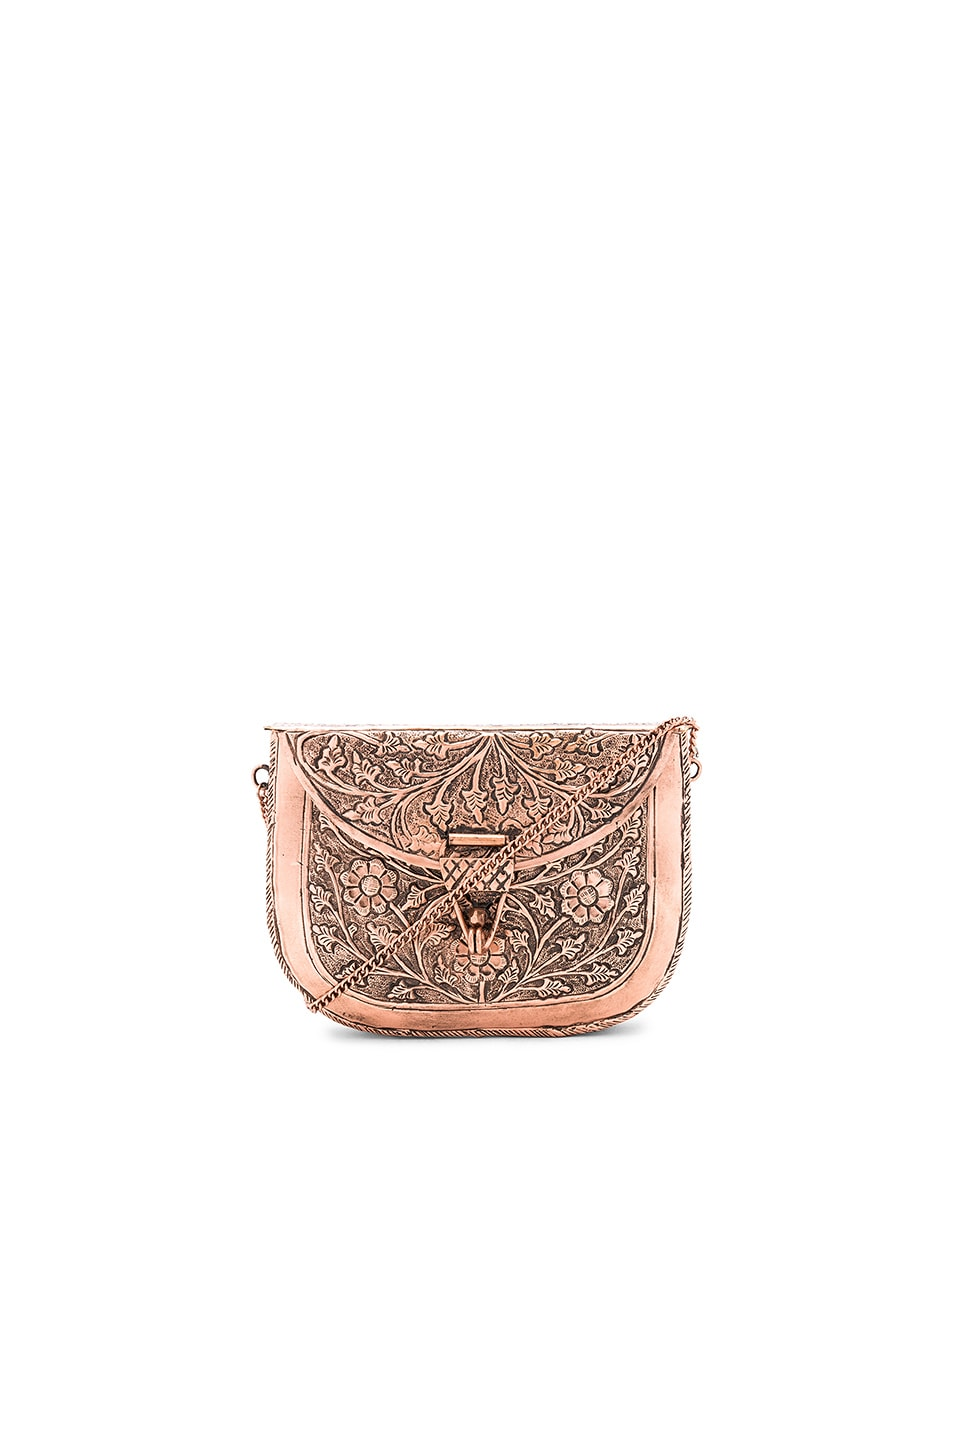 From St Xavier x Revolve Riley Clutch in Rose Gold